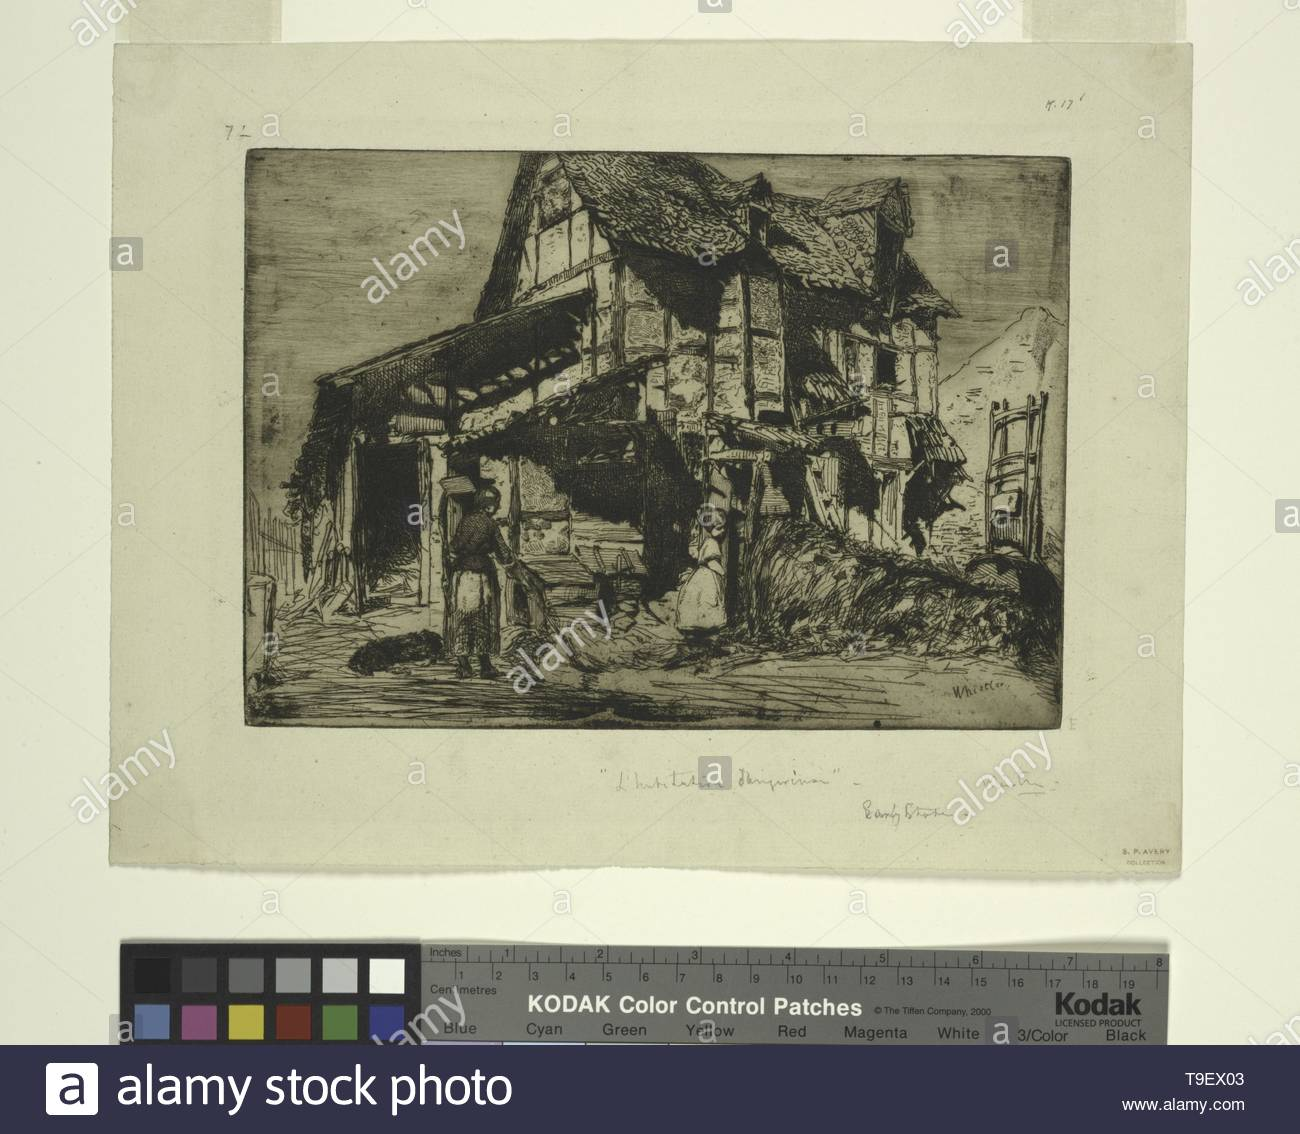 Whistler,JamesMcNeill(1834-1903)-The unsafe tenement [1] - Stock Image